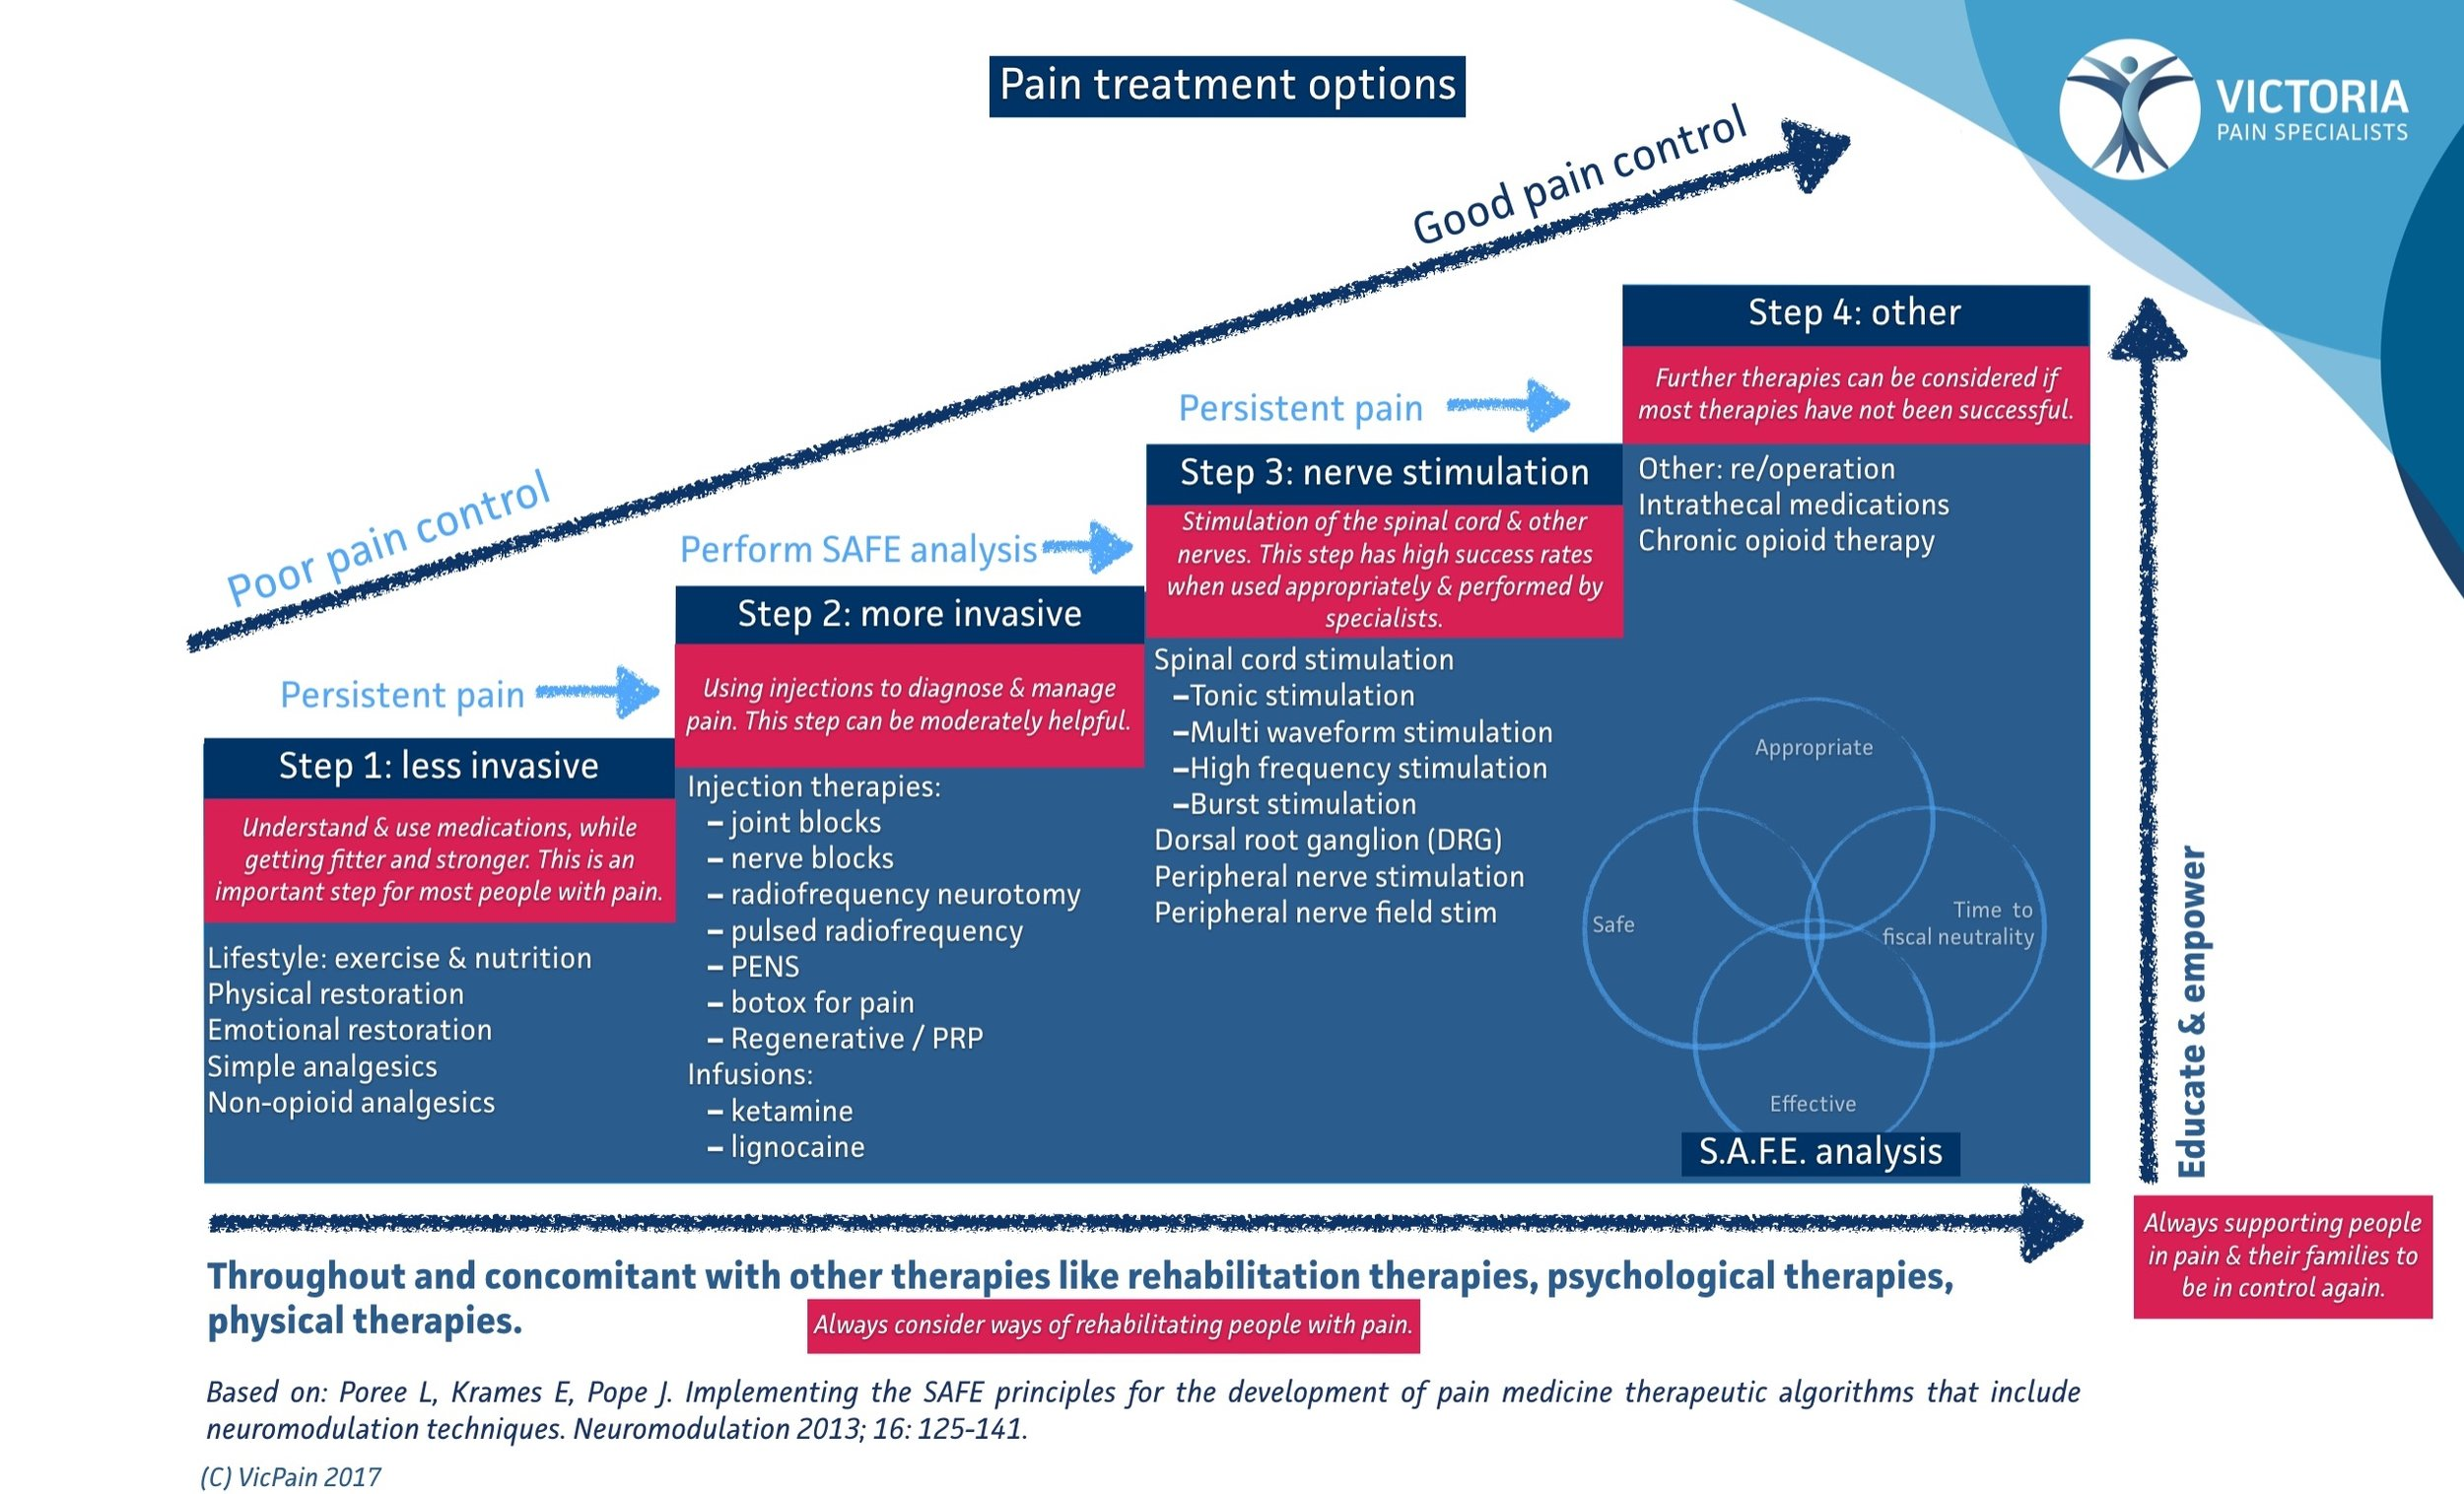 Vic pain - stepwise approach